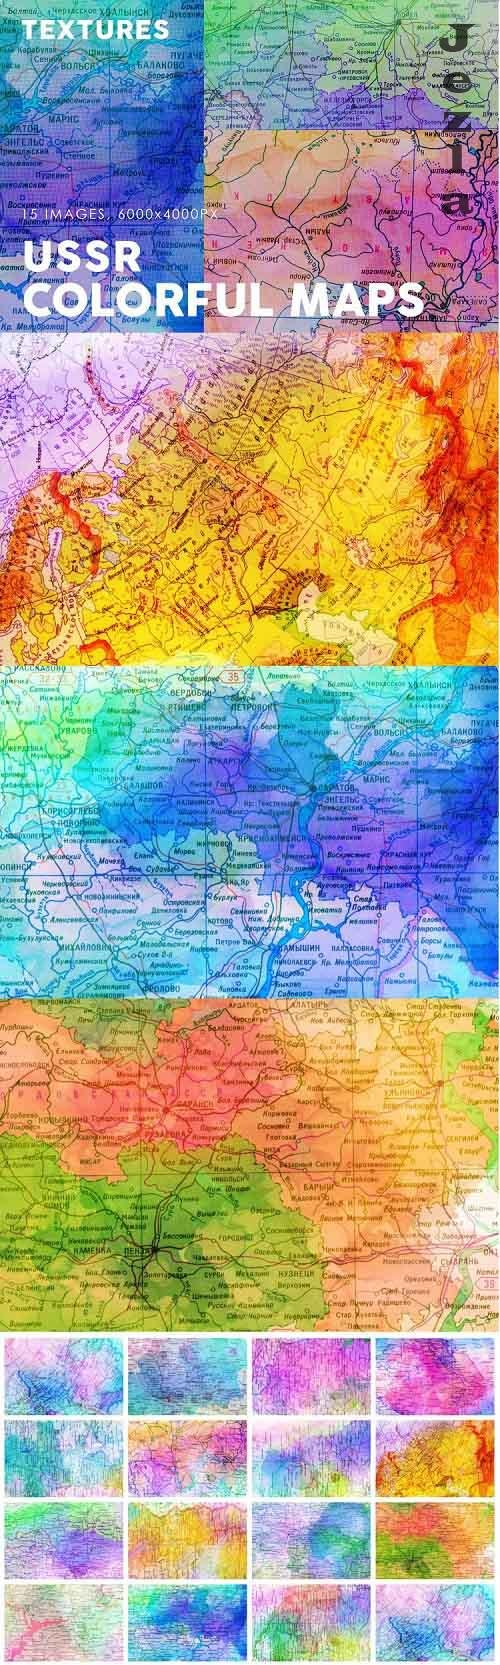 USSR Colorful Map Textures - 728411